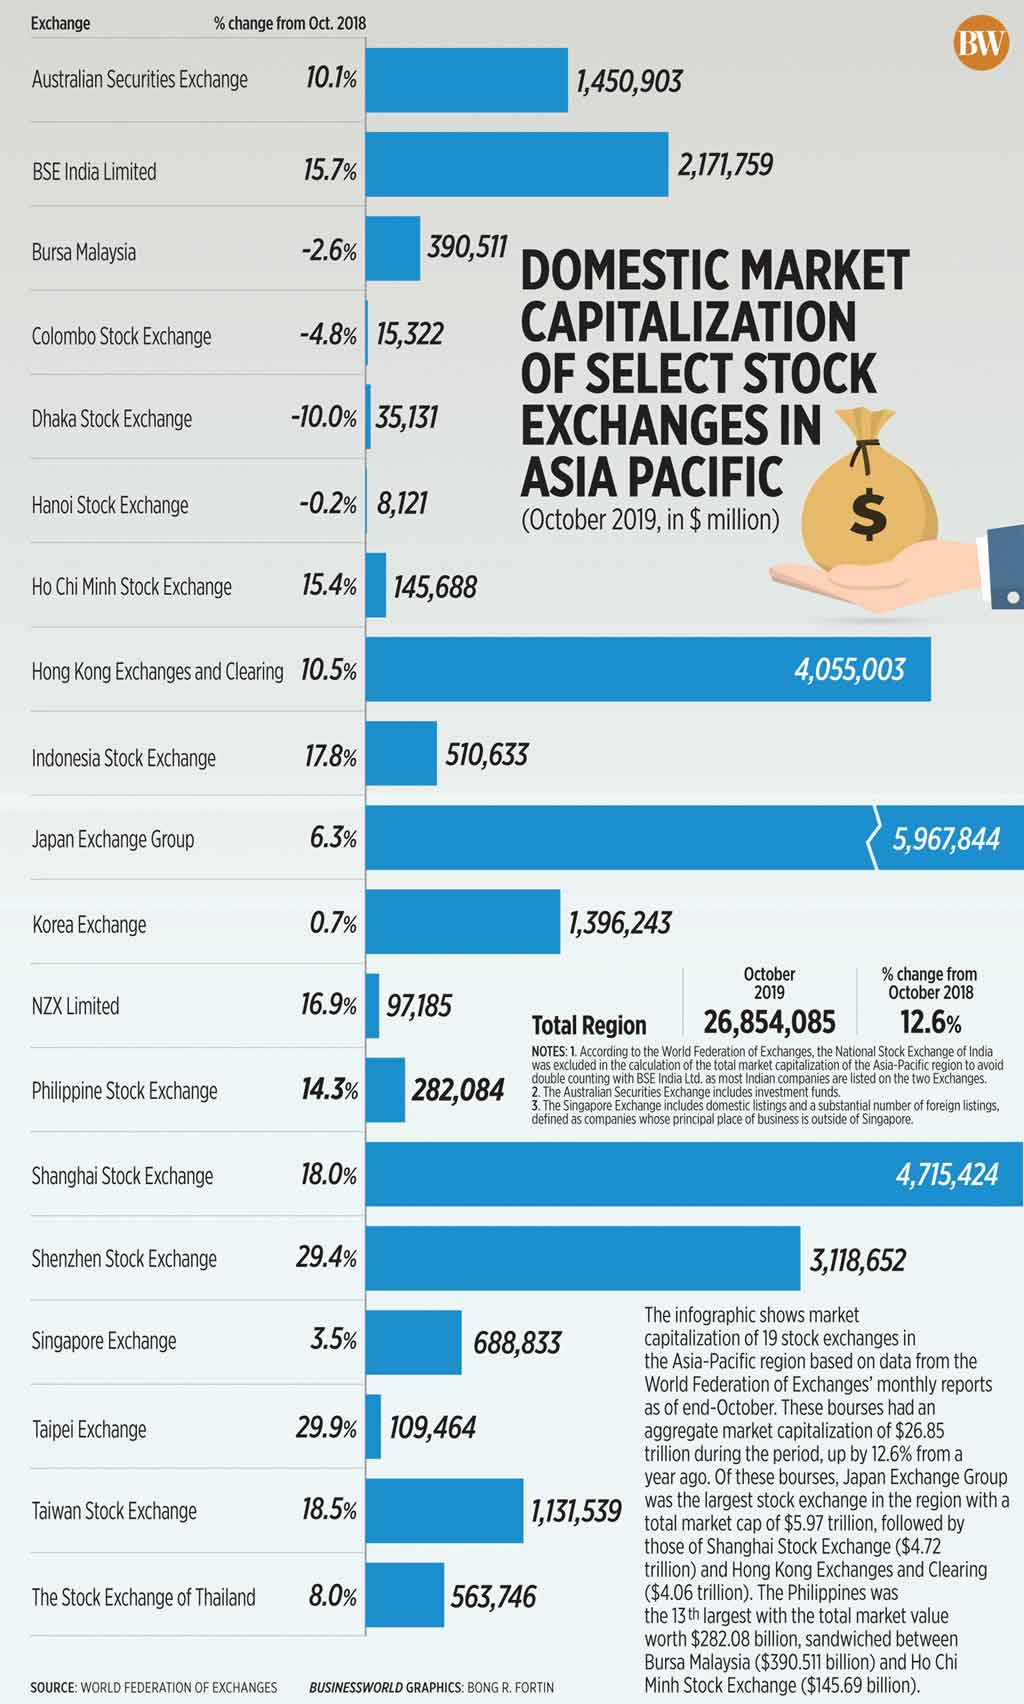 Domestic market capitalization of select stock exchanges in Asia Pacific